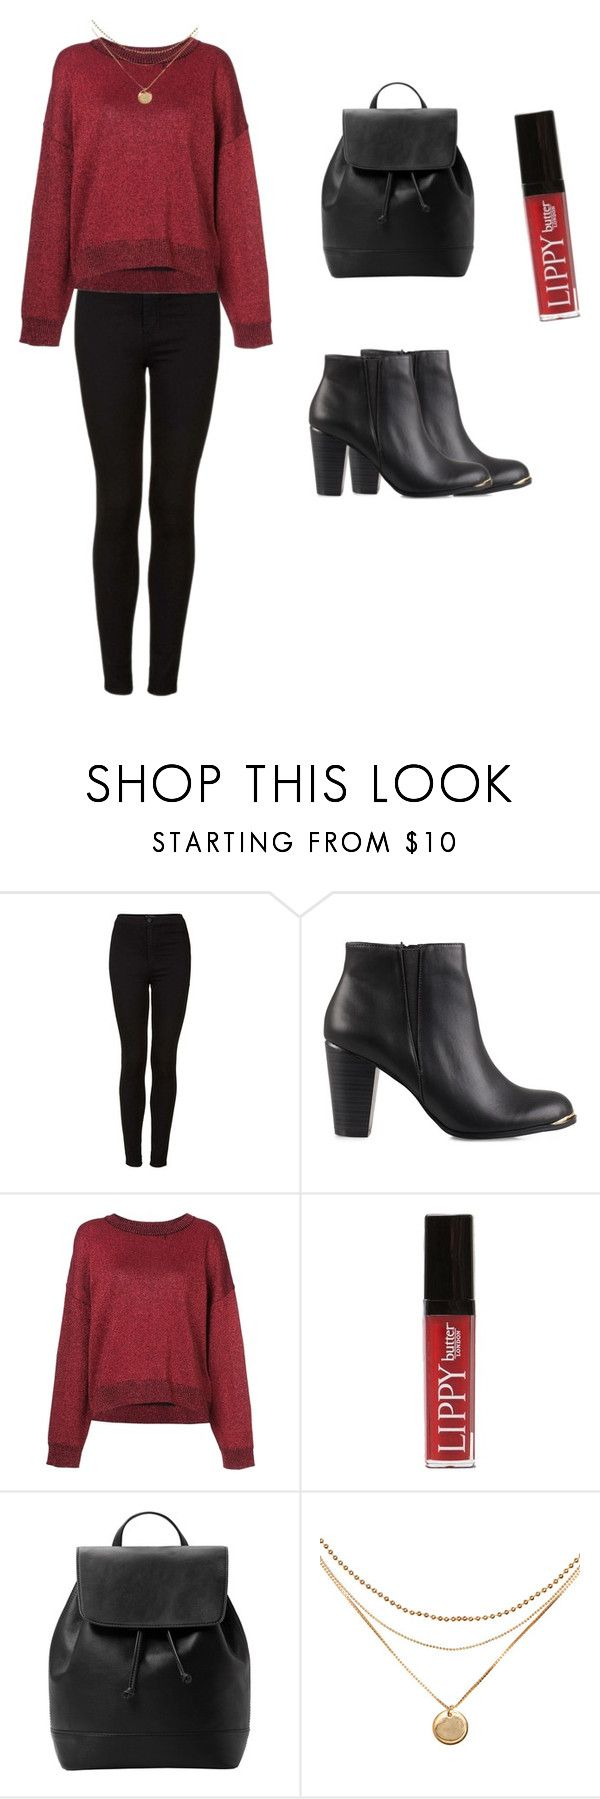 Untitled #218 by zoegeorgiou2001 on Polyvore featuring RtA, Topshop, Miss Selfridge, MANGO and Butter London